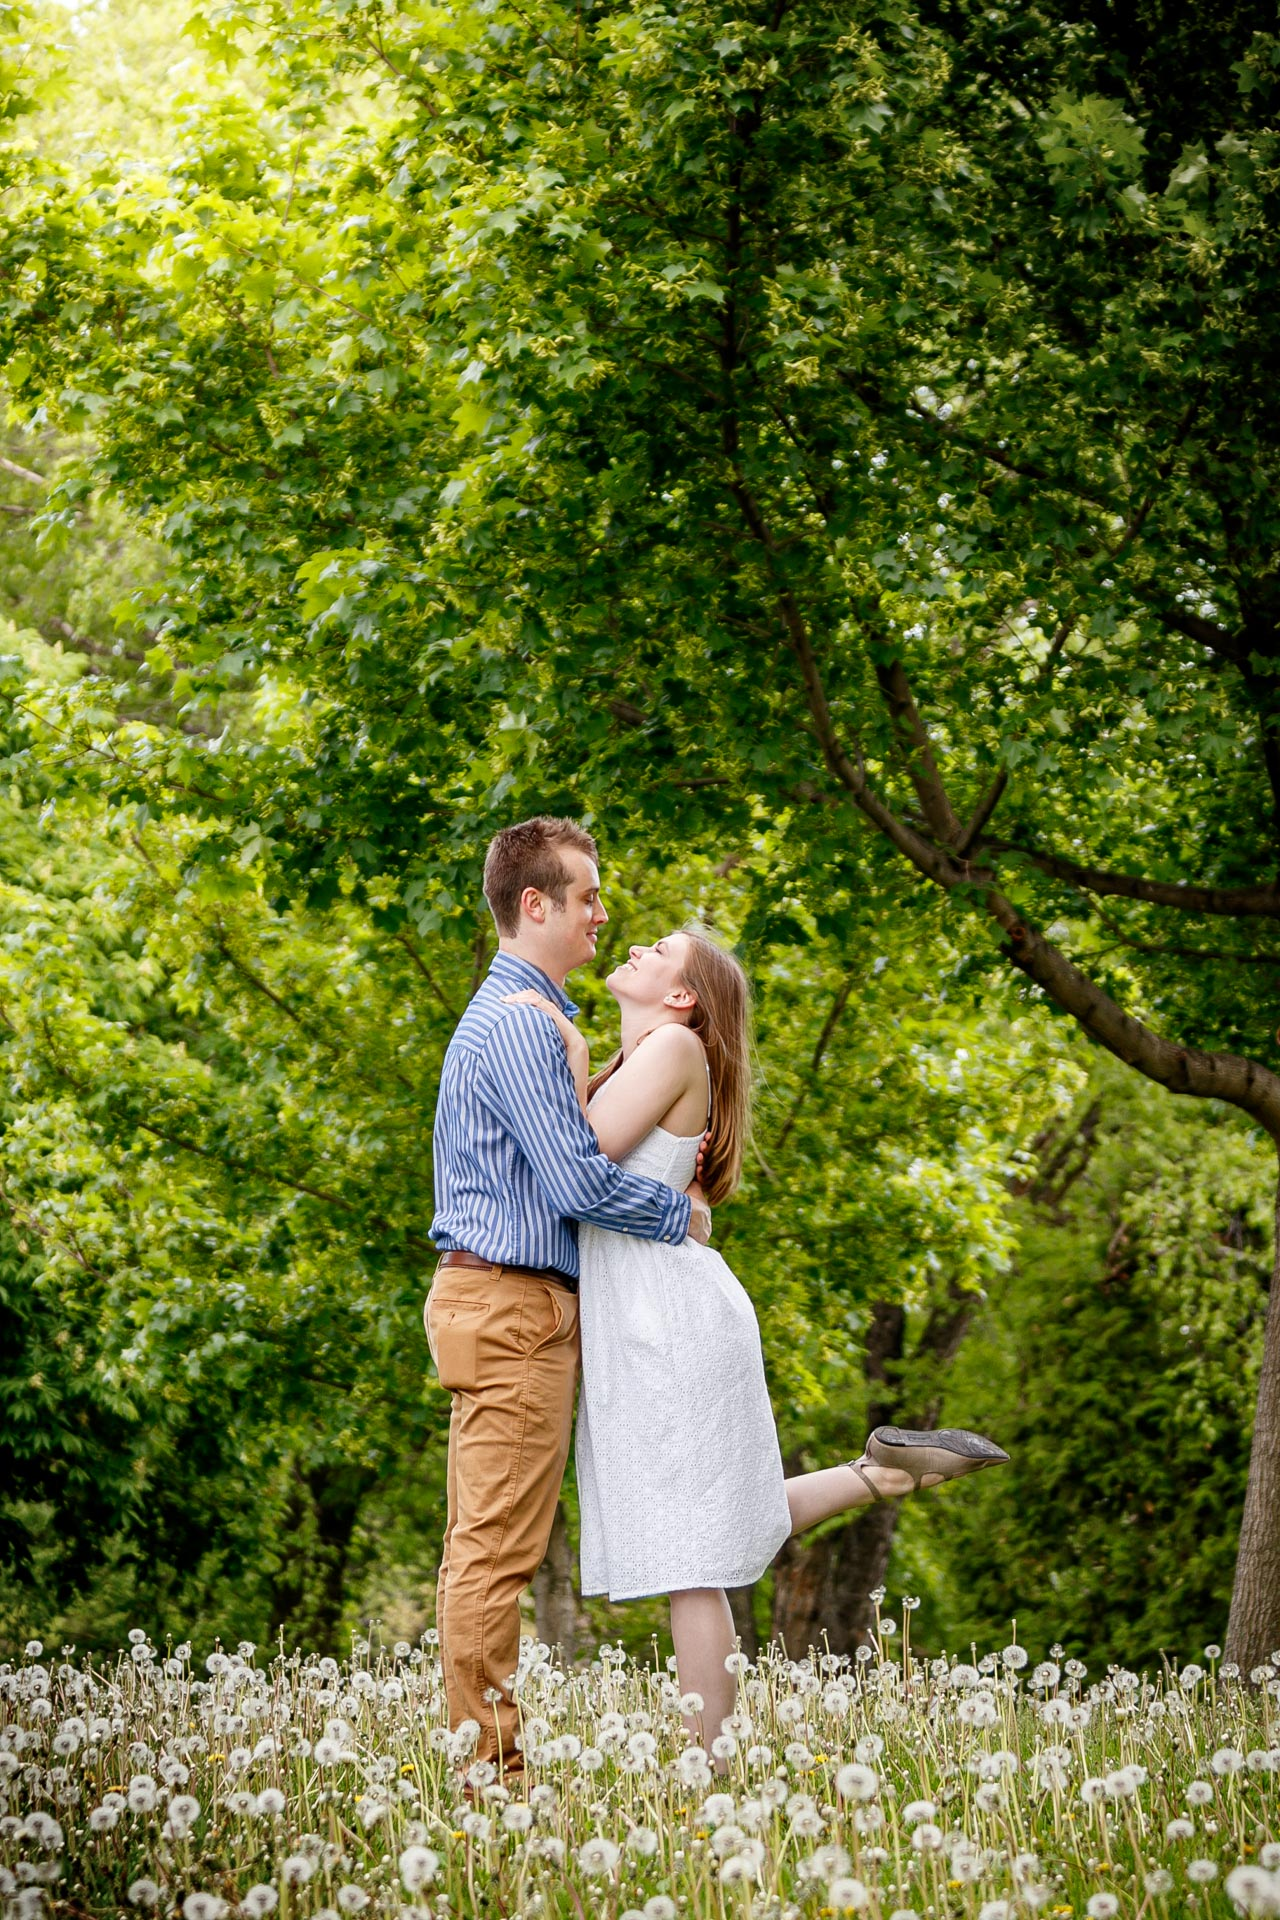 engagement-photos-voyageur-park-de-pere-wisconsin-wi-adam-shea-photography-adam-shea-photography-green-bay-appleton-neenah-photographer-15.jpg